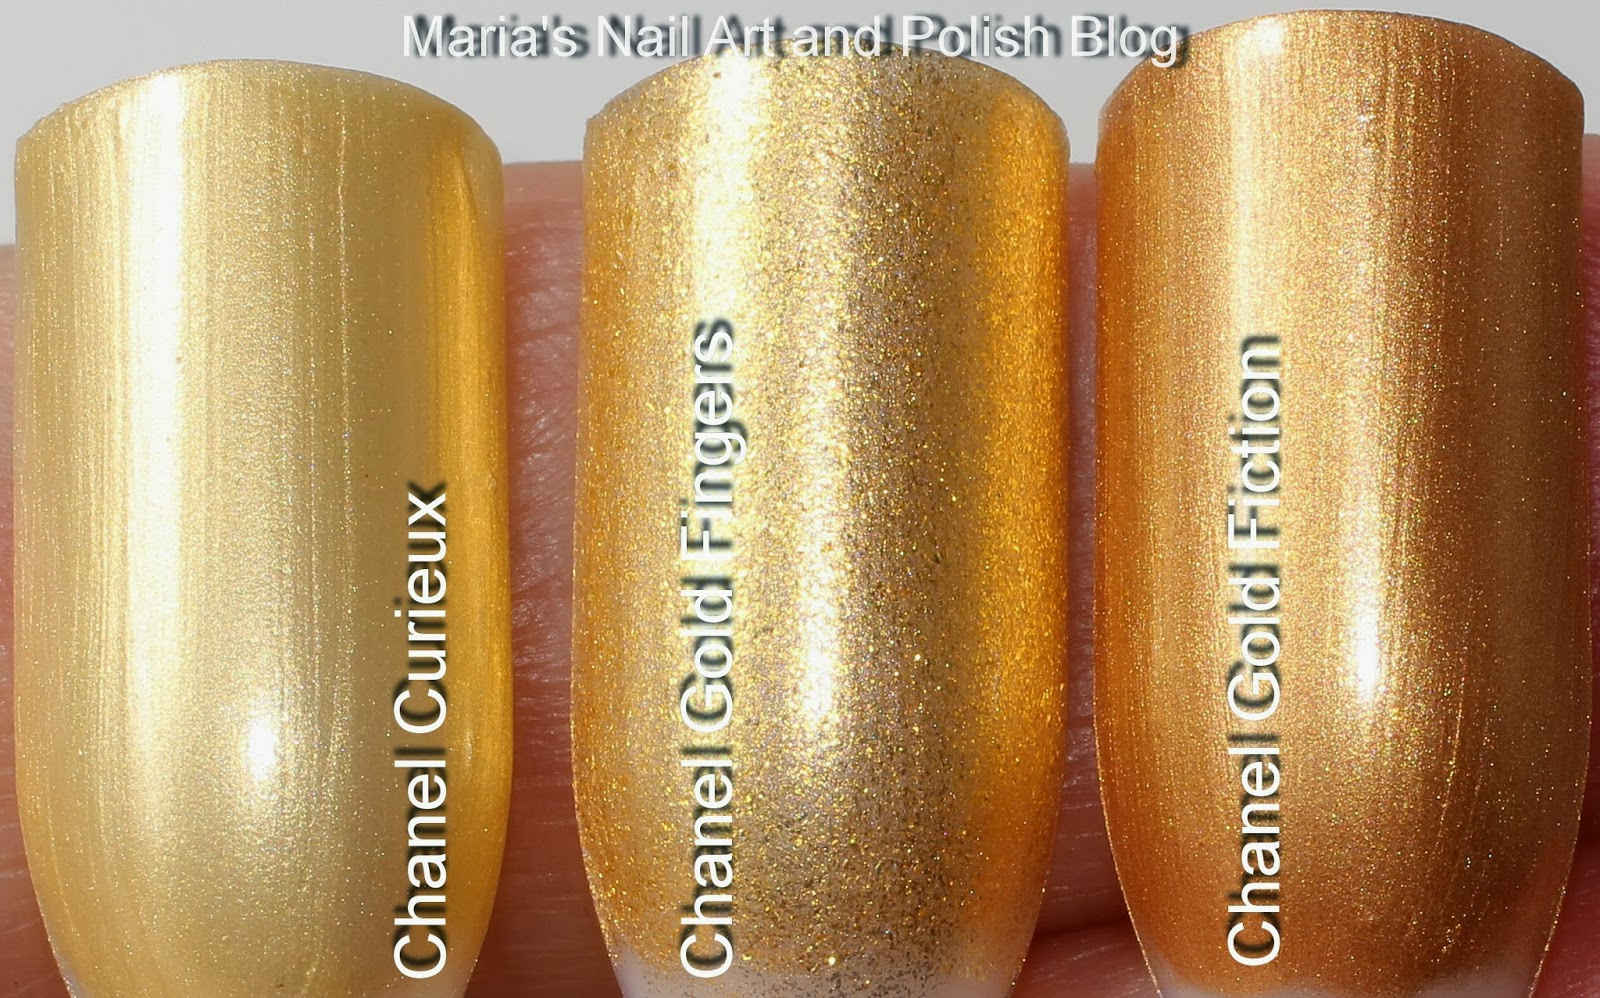 marias nail art and polish blog: chanel gold fingers - swatches